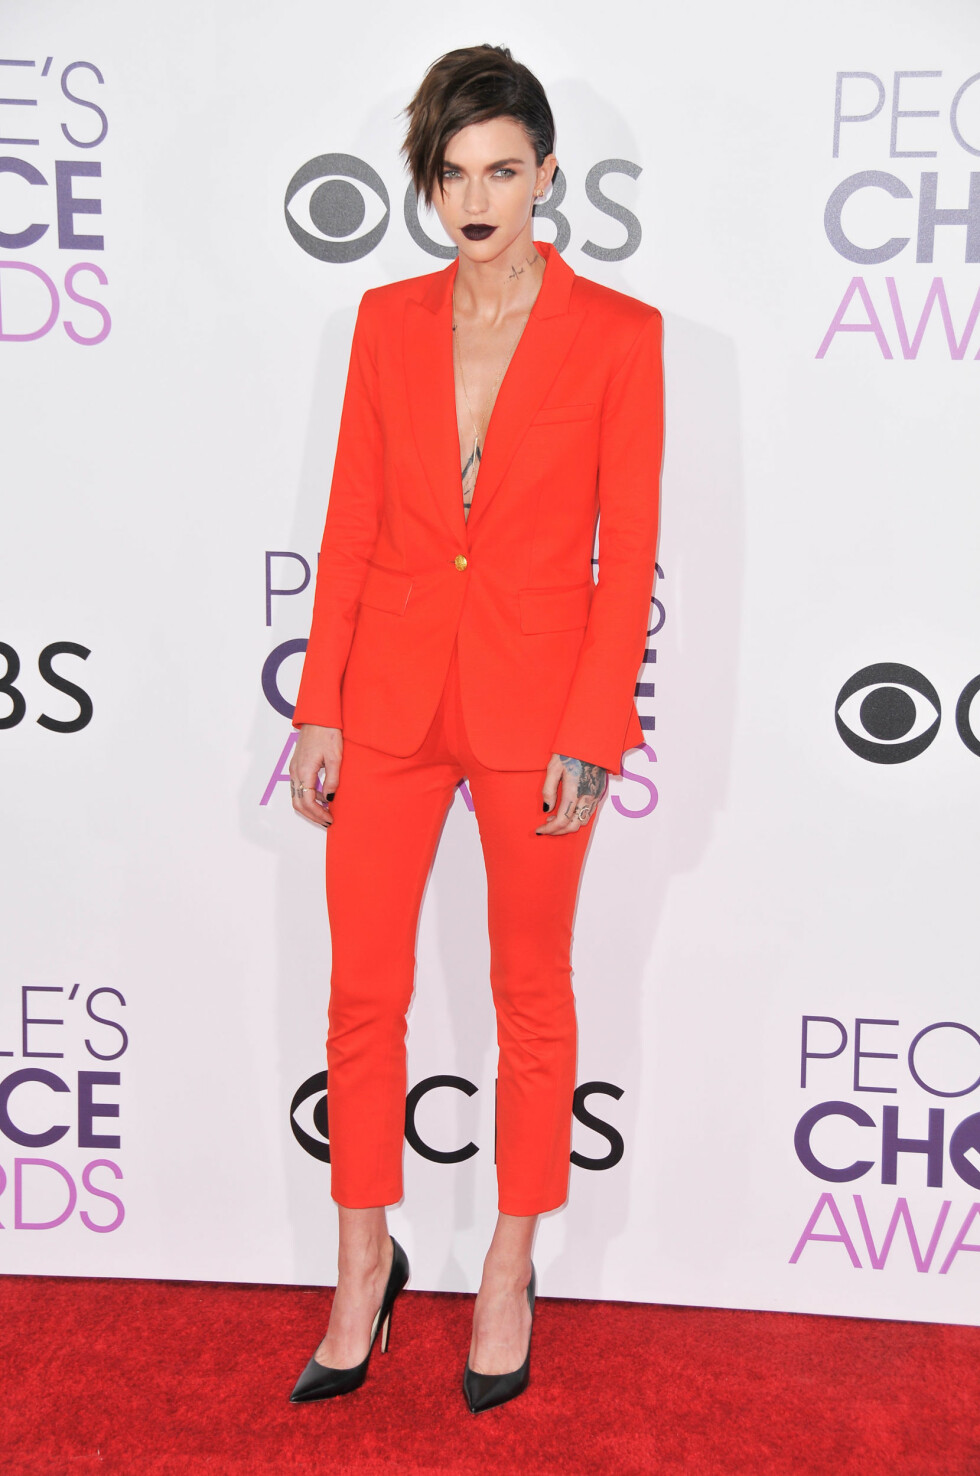 PEOPLE'S CHOICE AWARDS: Ruby Rose. Foto: SipaUSA